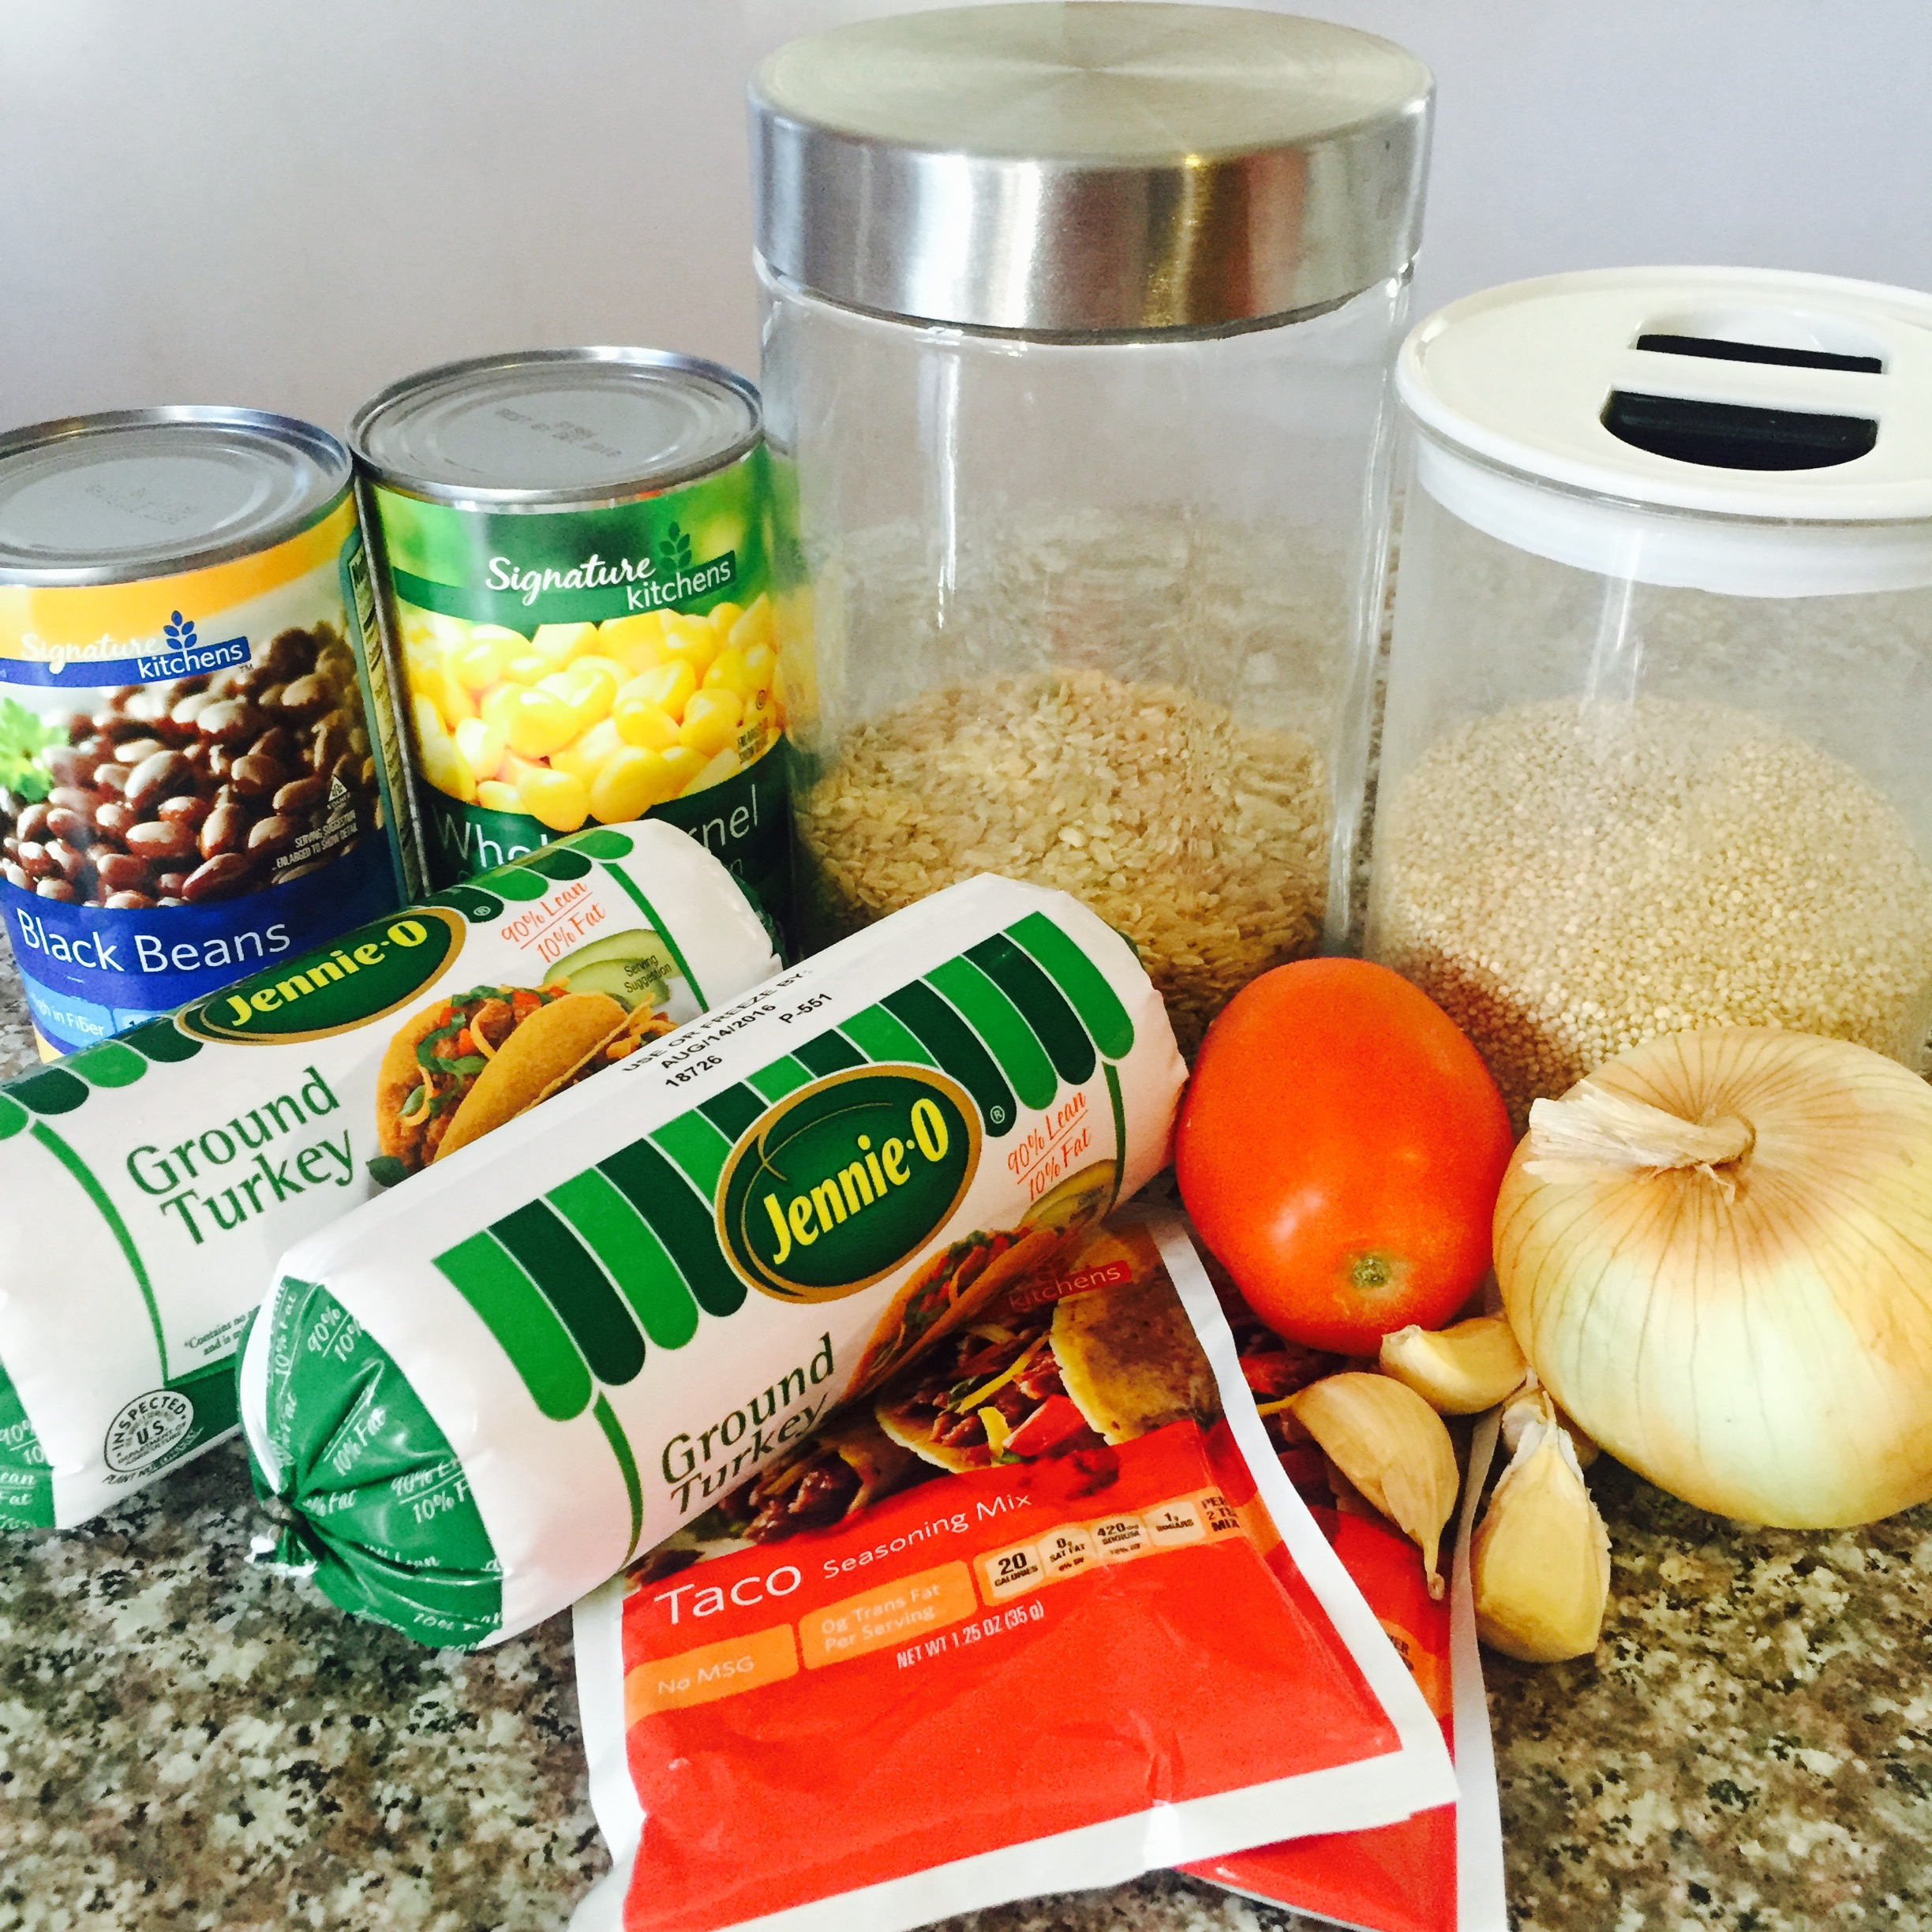 Southwester Taco Rice & Quinoa Ingredients